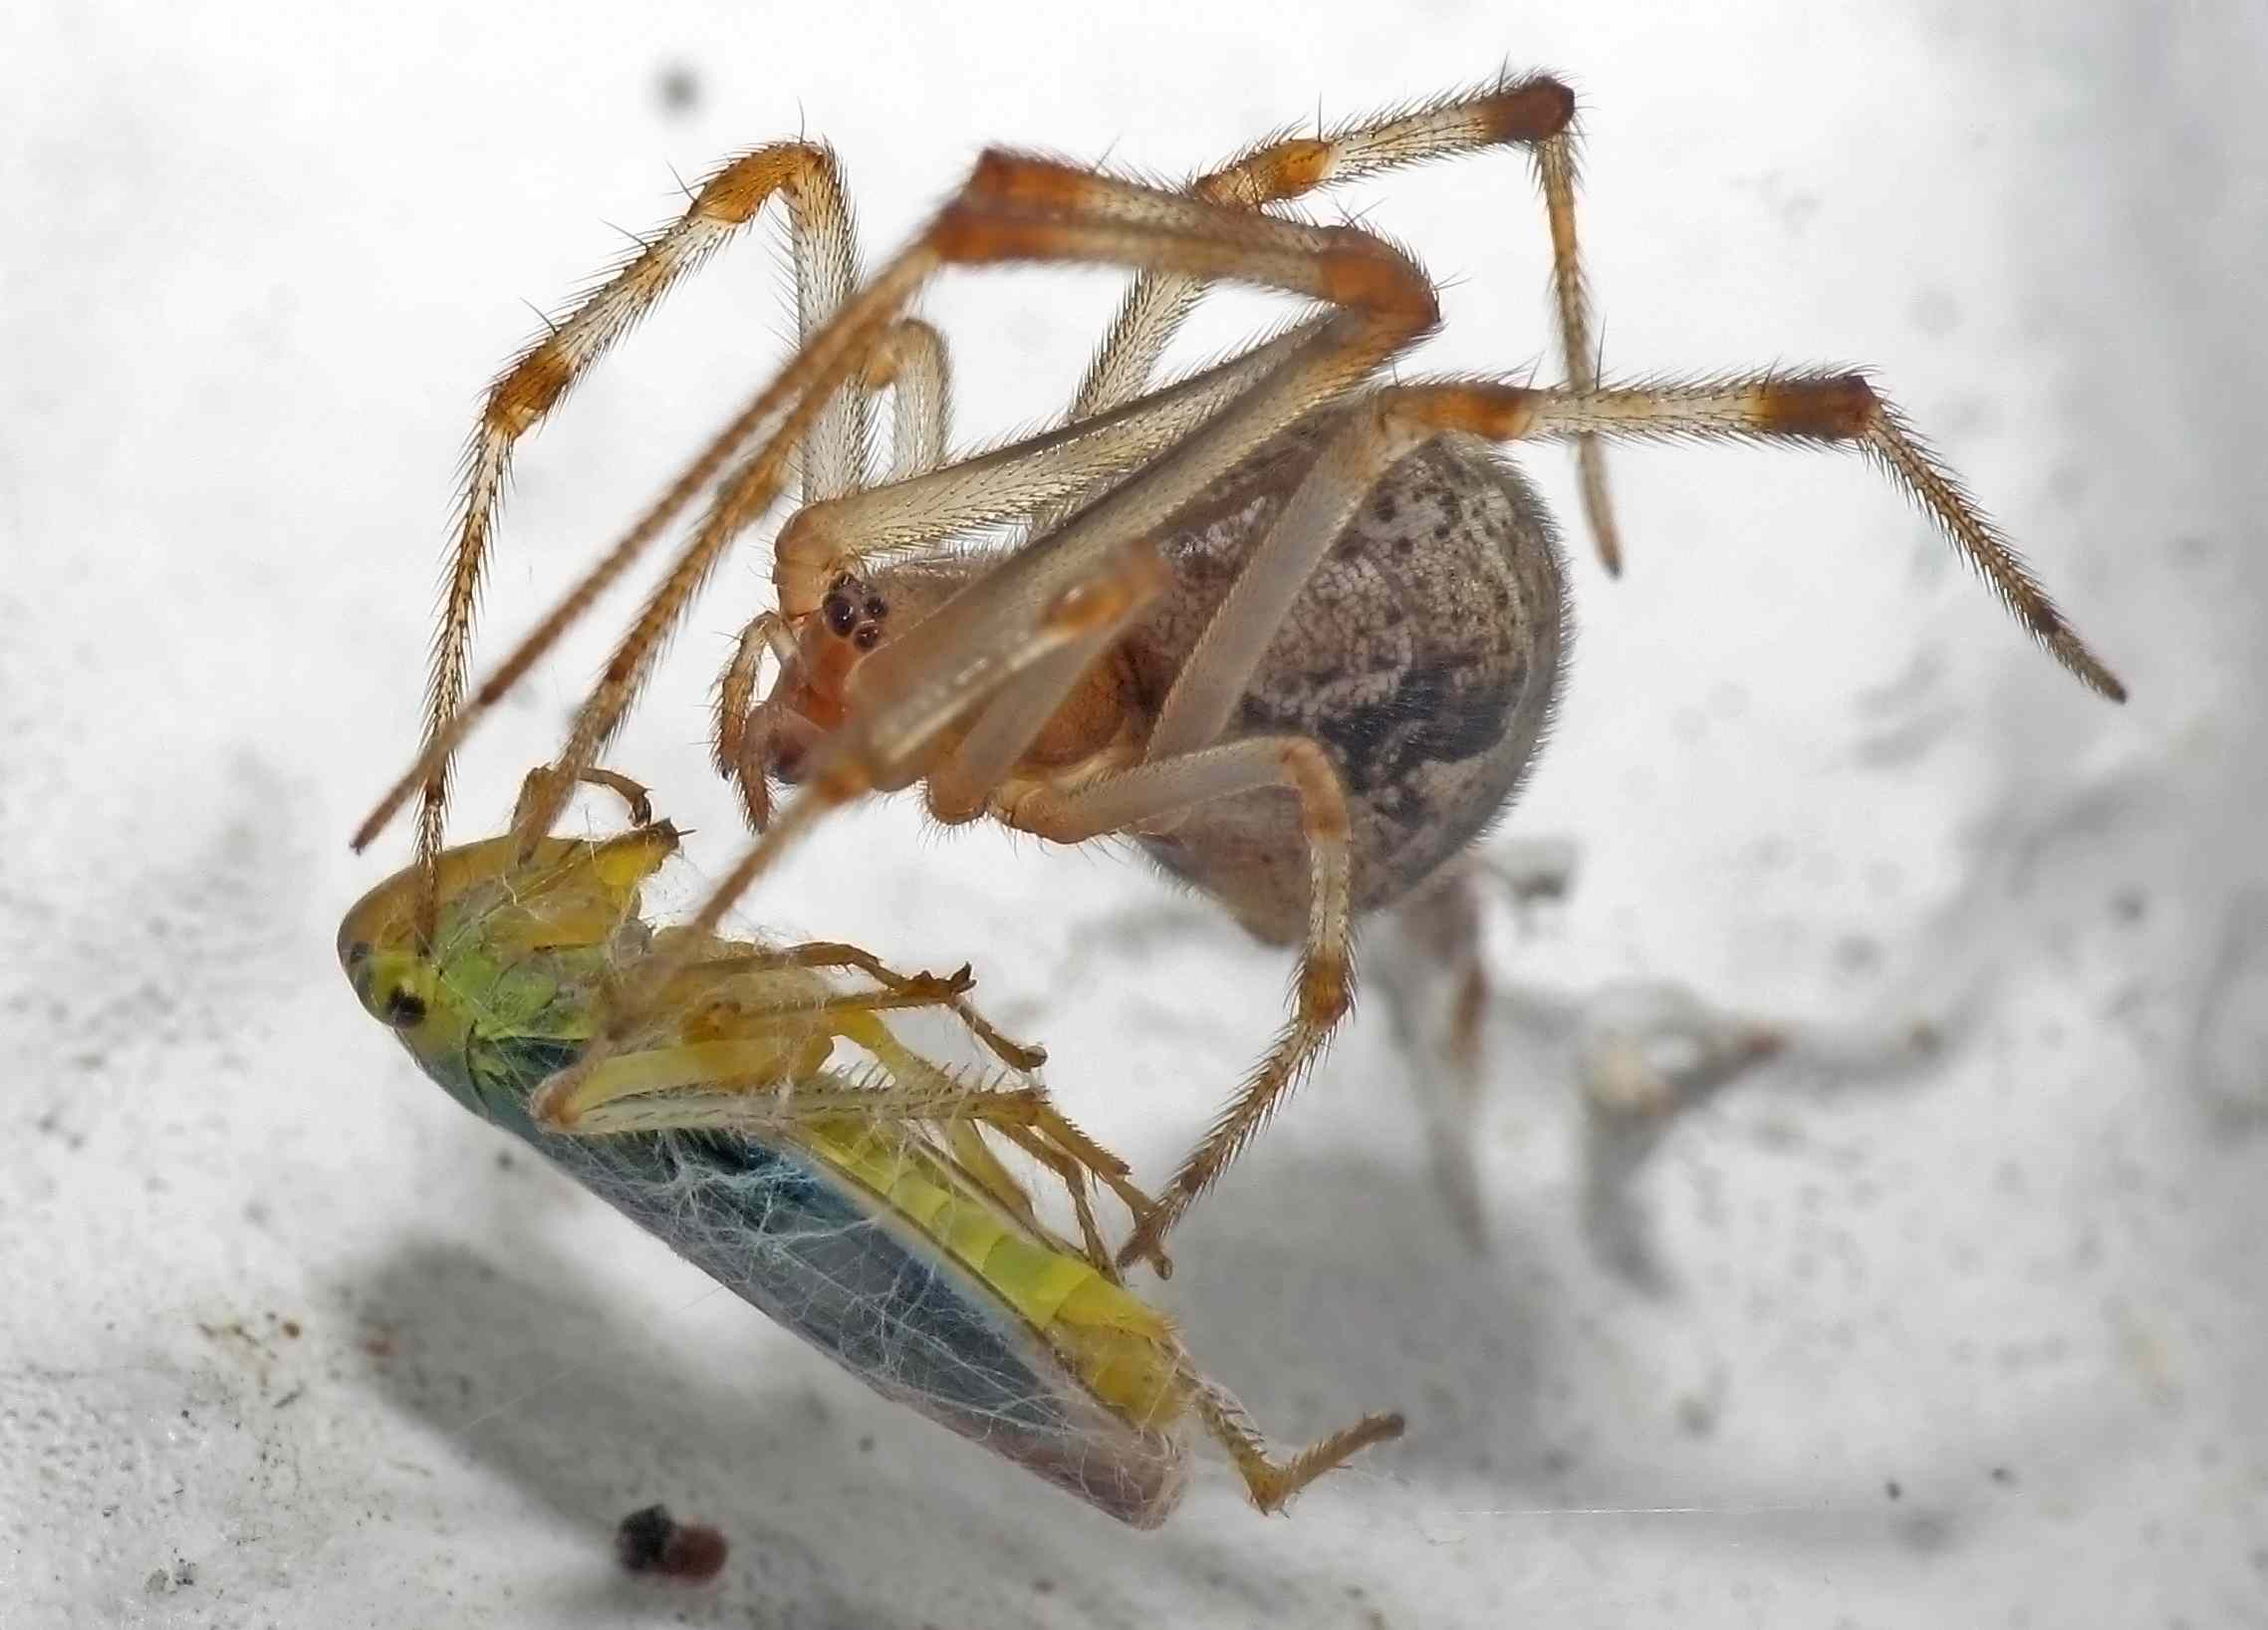 Parasteatoda tepidariorum or American house spider has insect for dinner